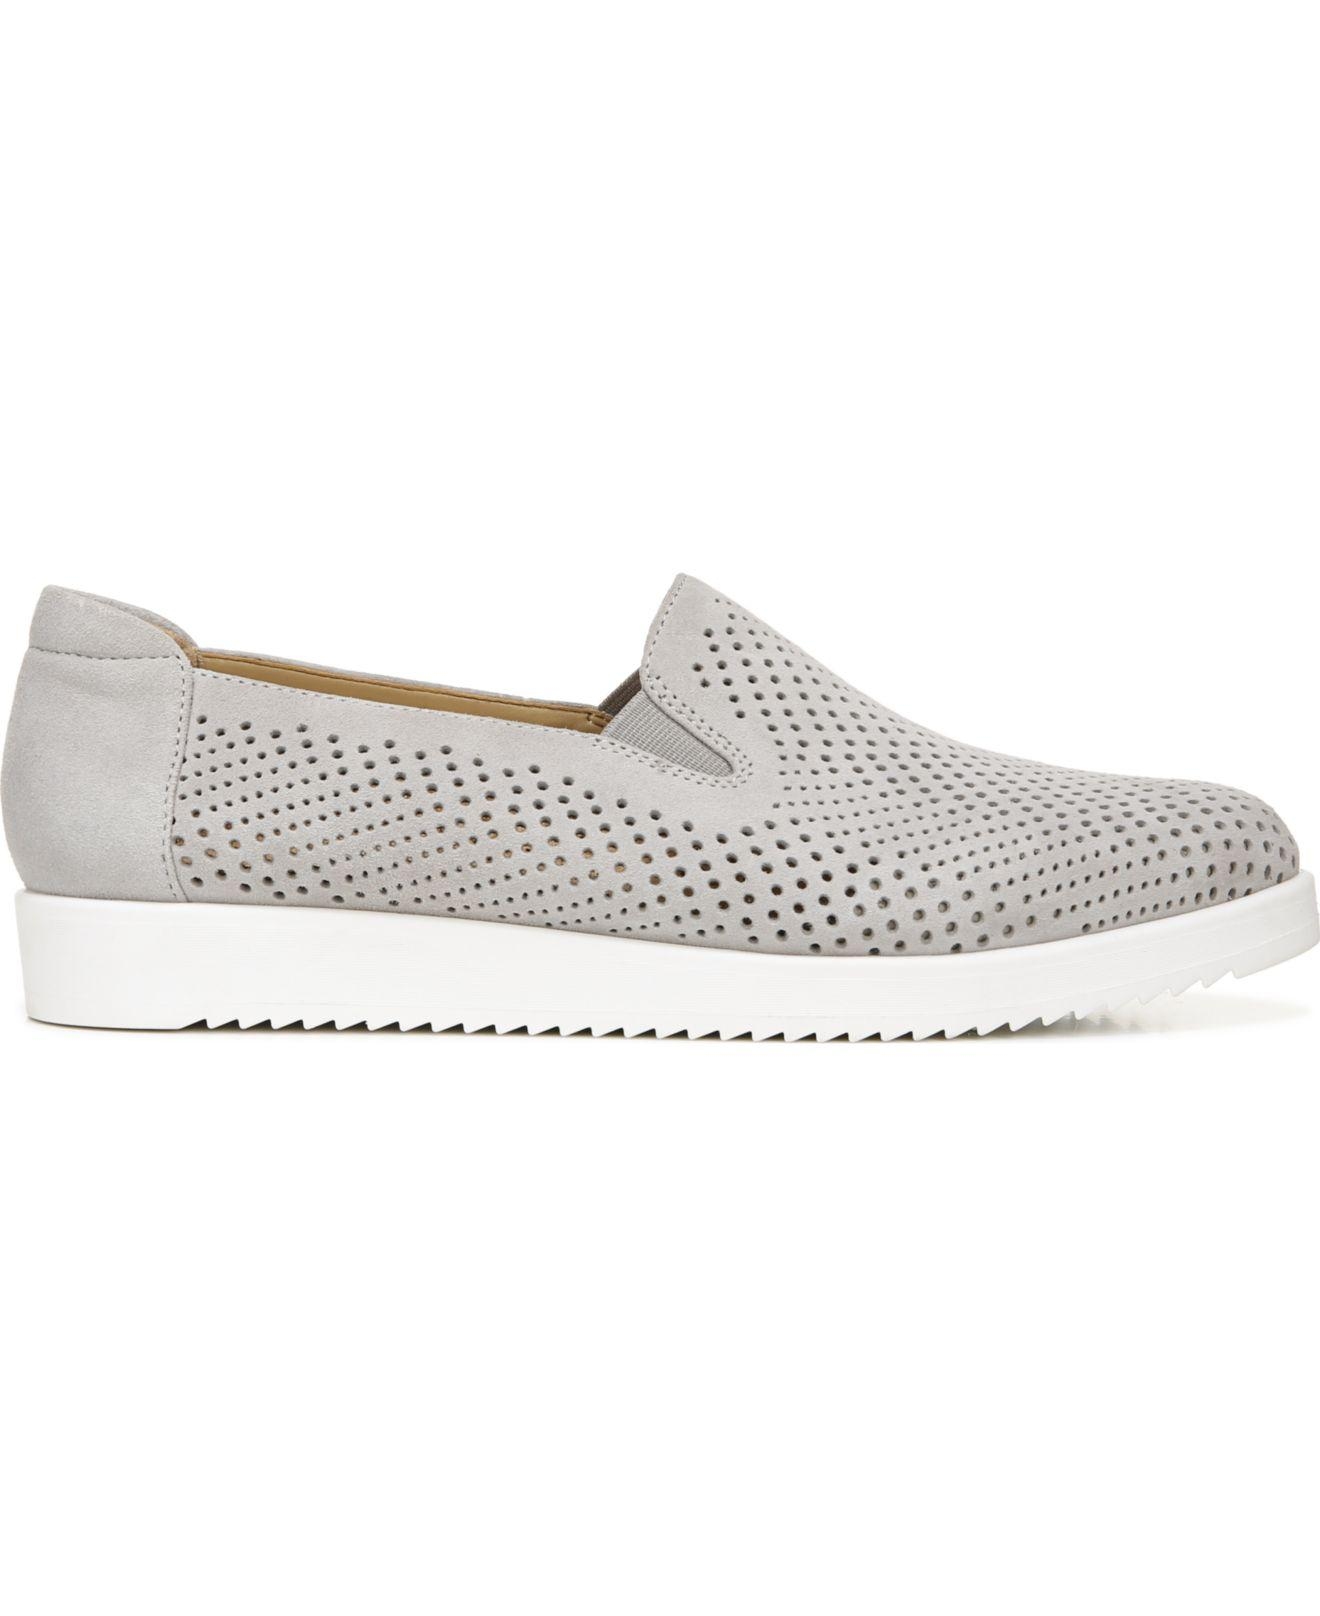 Naturalizer Womens Bonnie Slip-ons Loafer